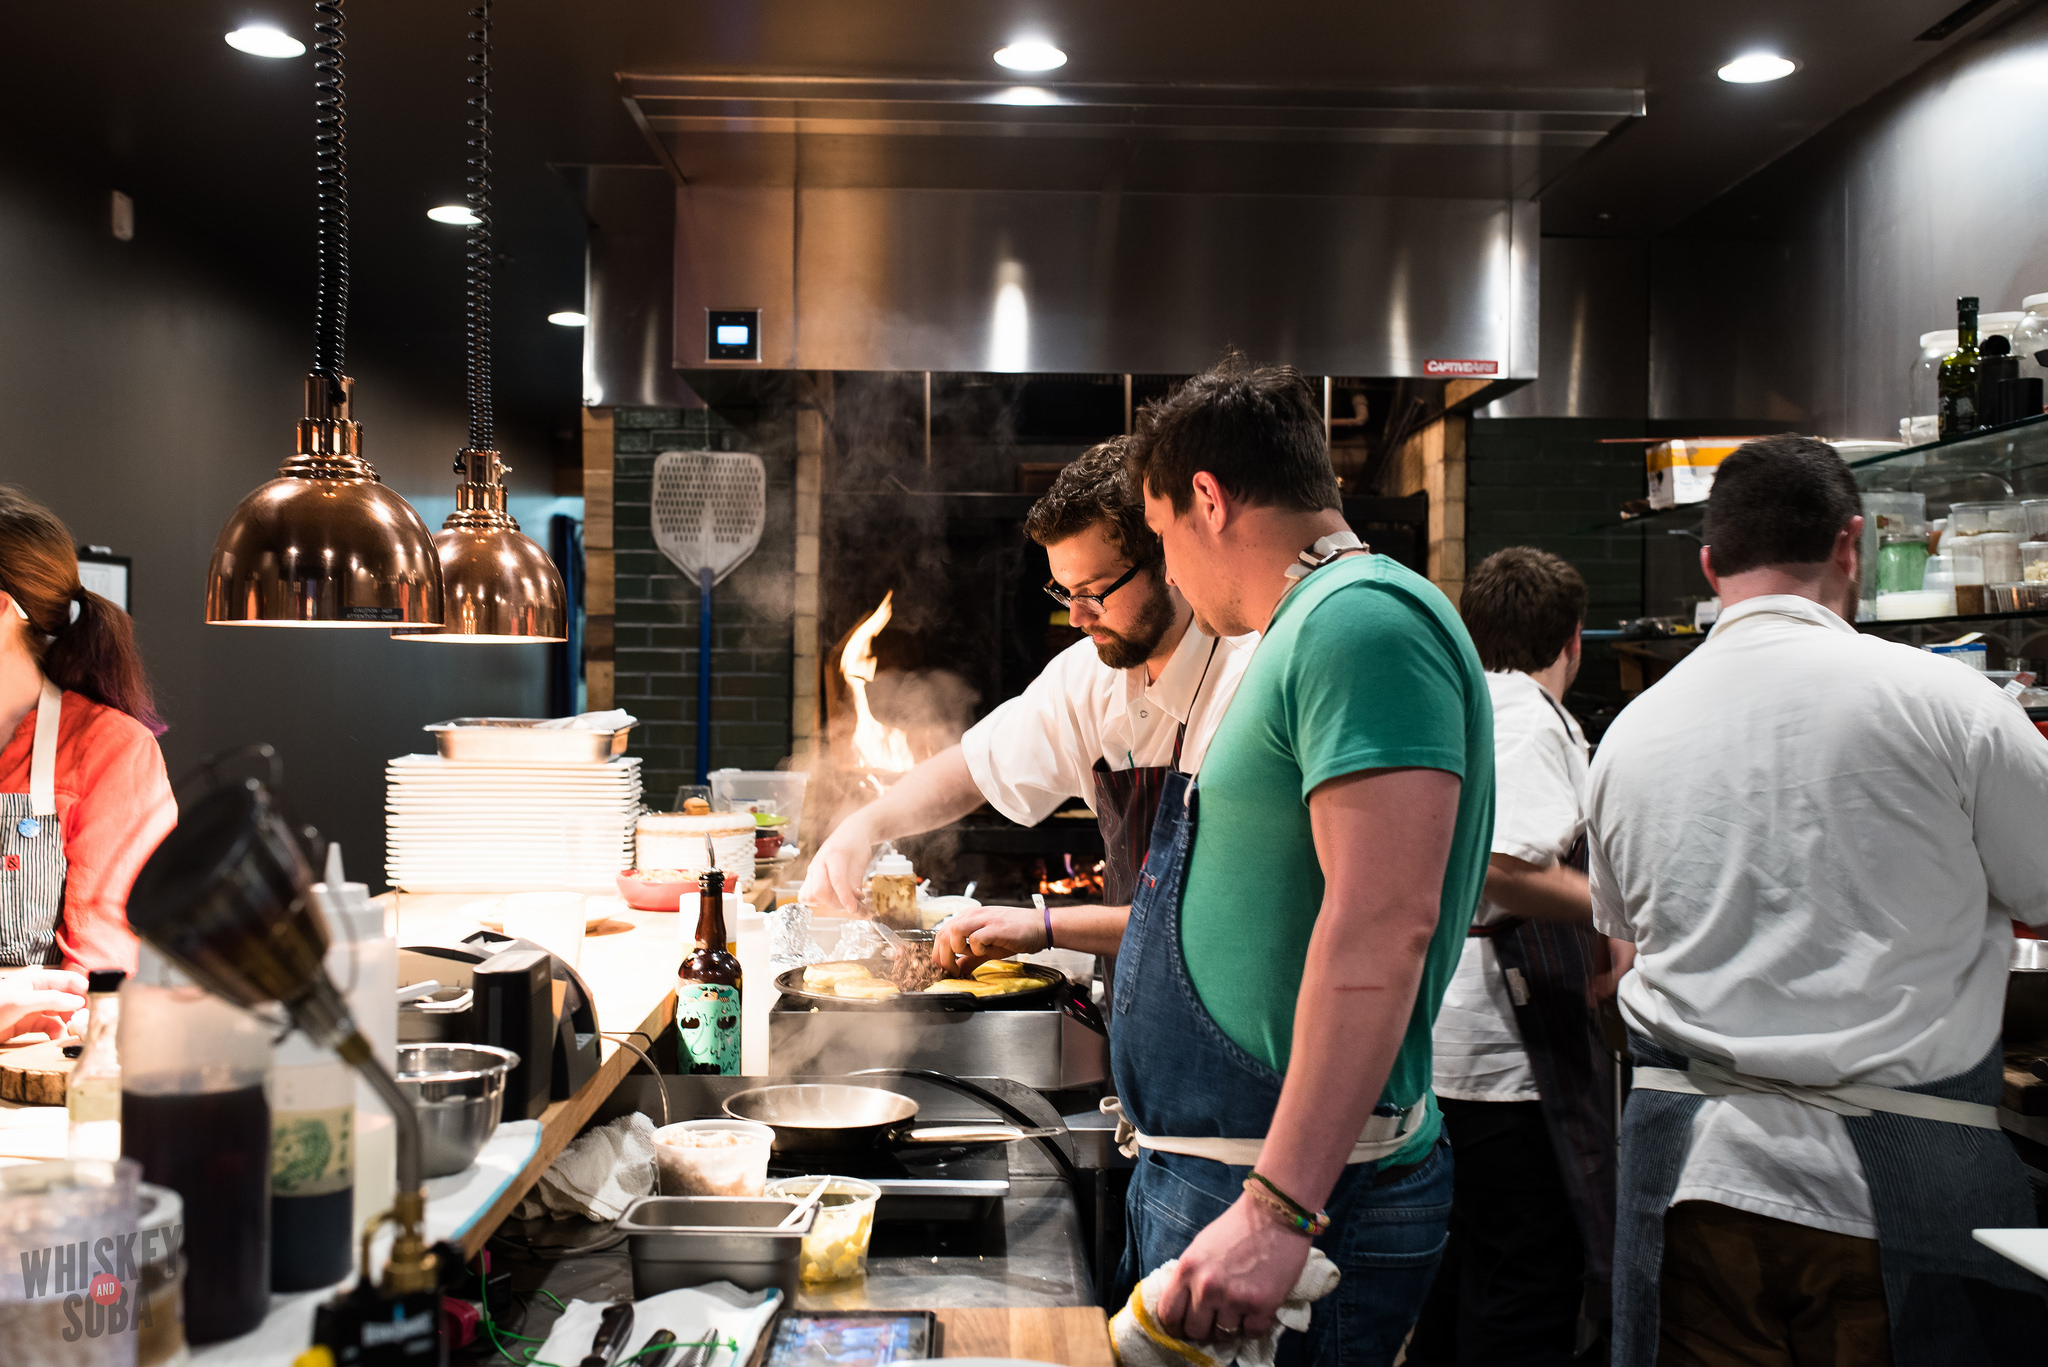 Cooking at Publico